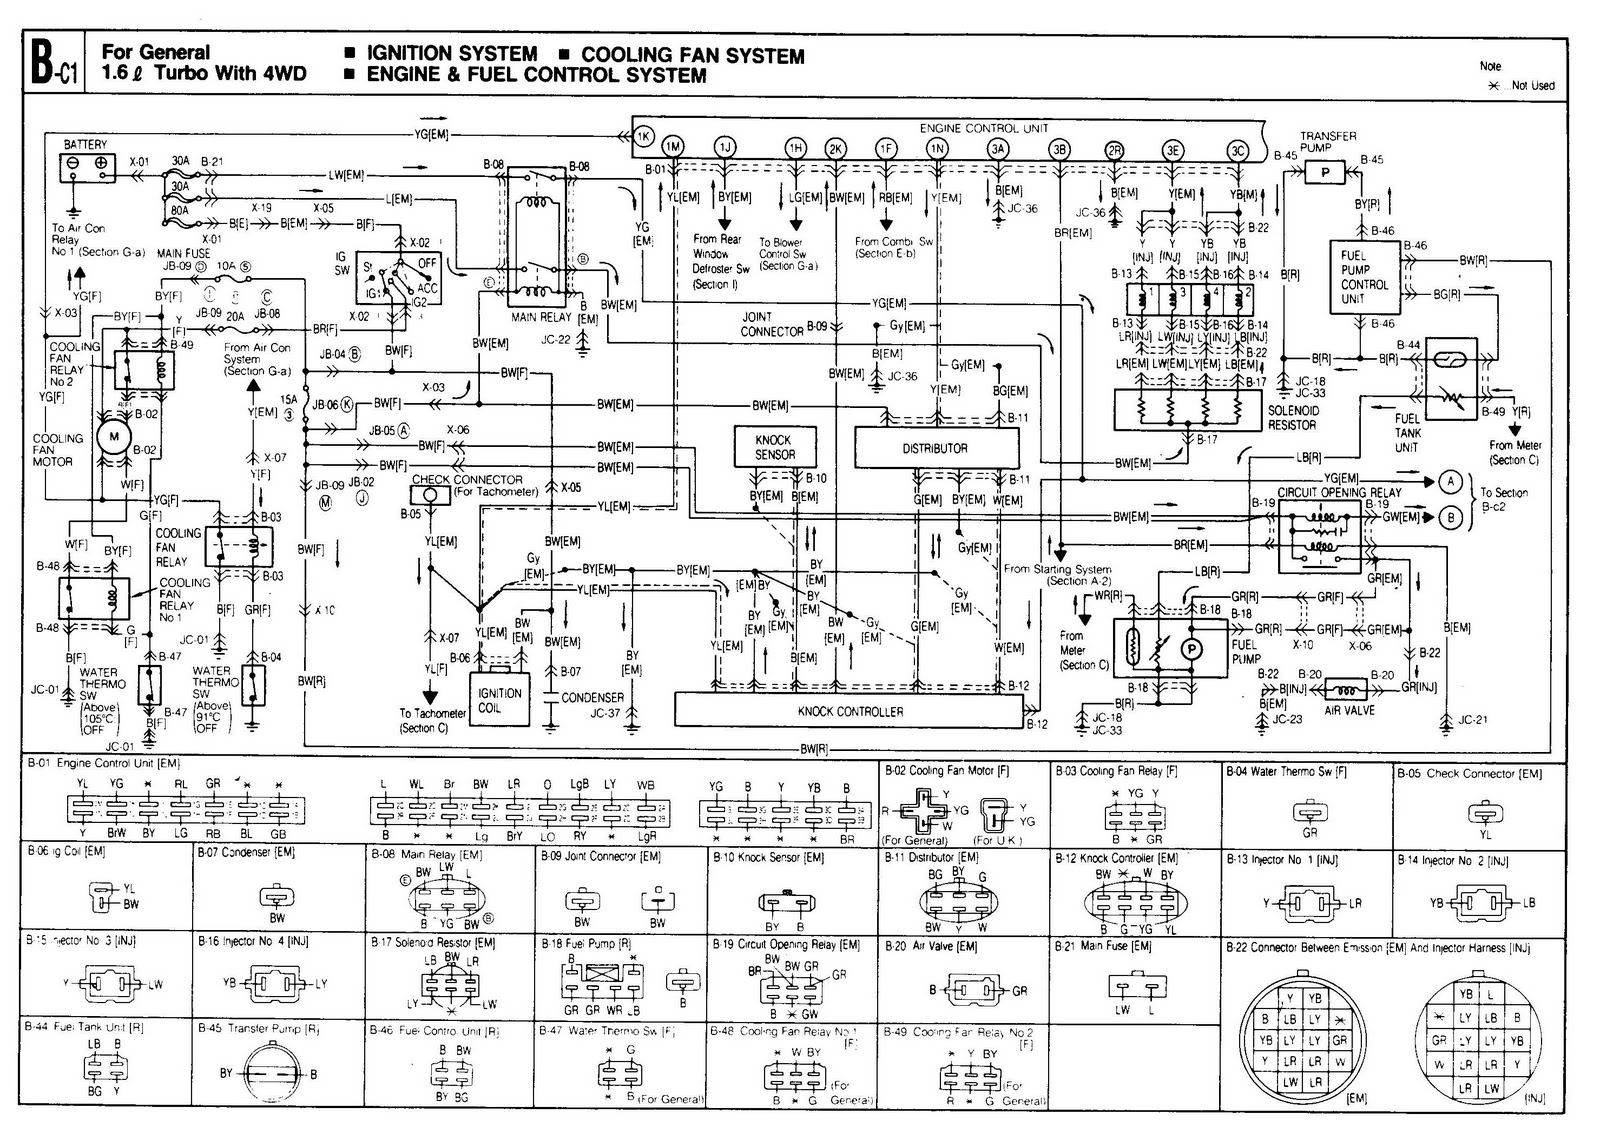 Breathtaking bmw e90 wiring diagram pdf gallery best image diagram breathtaking bmw e90 wiring diagram pdf gallery best image diagram asfbconference2016 Images